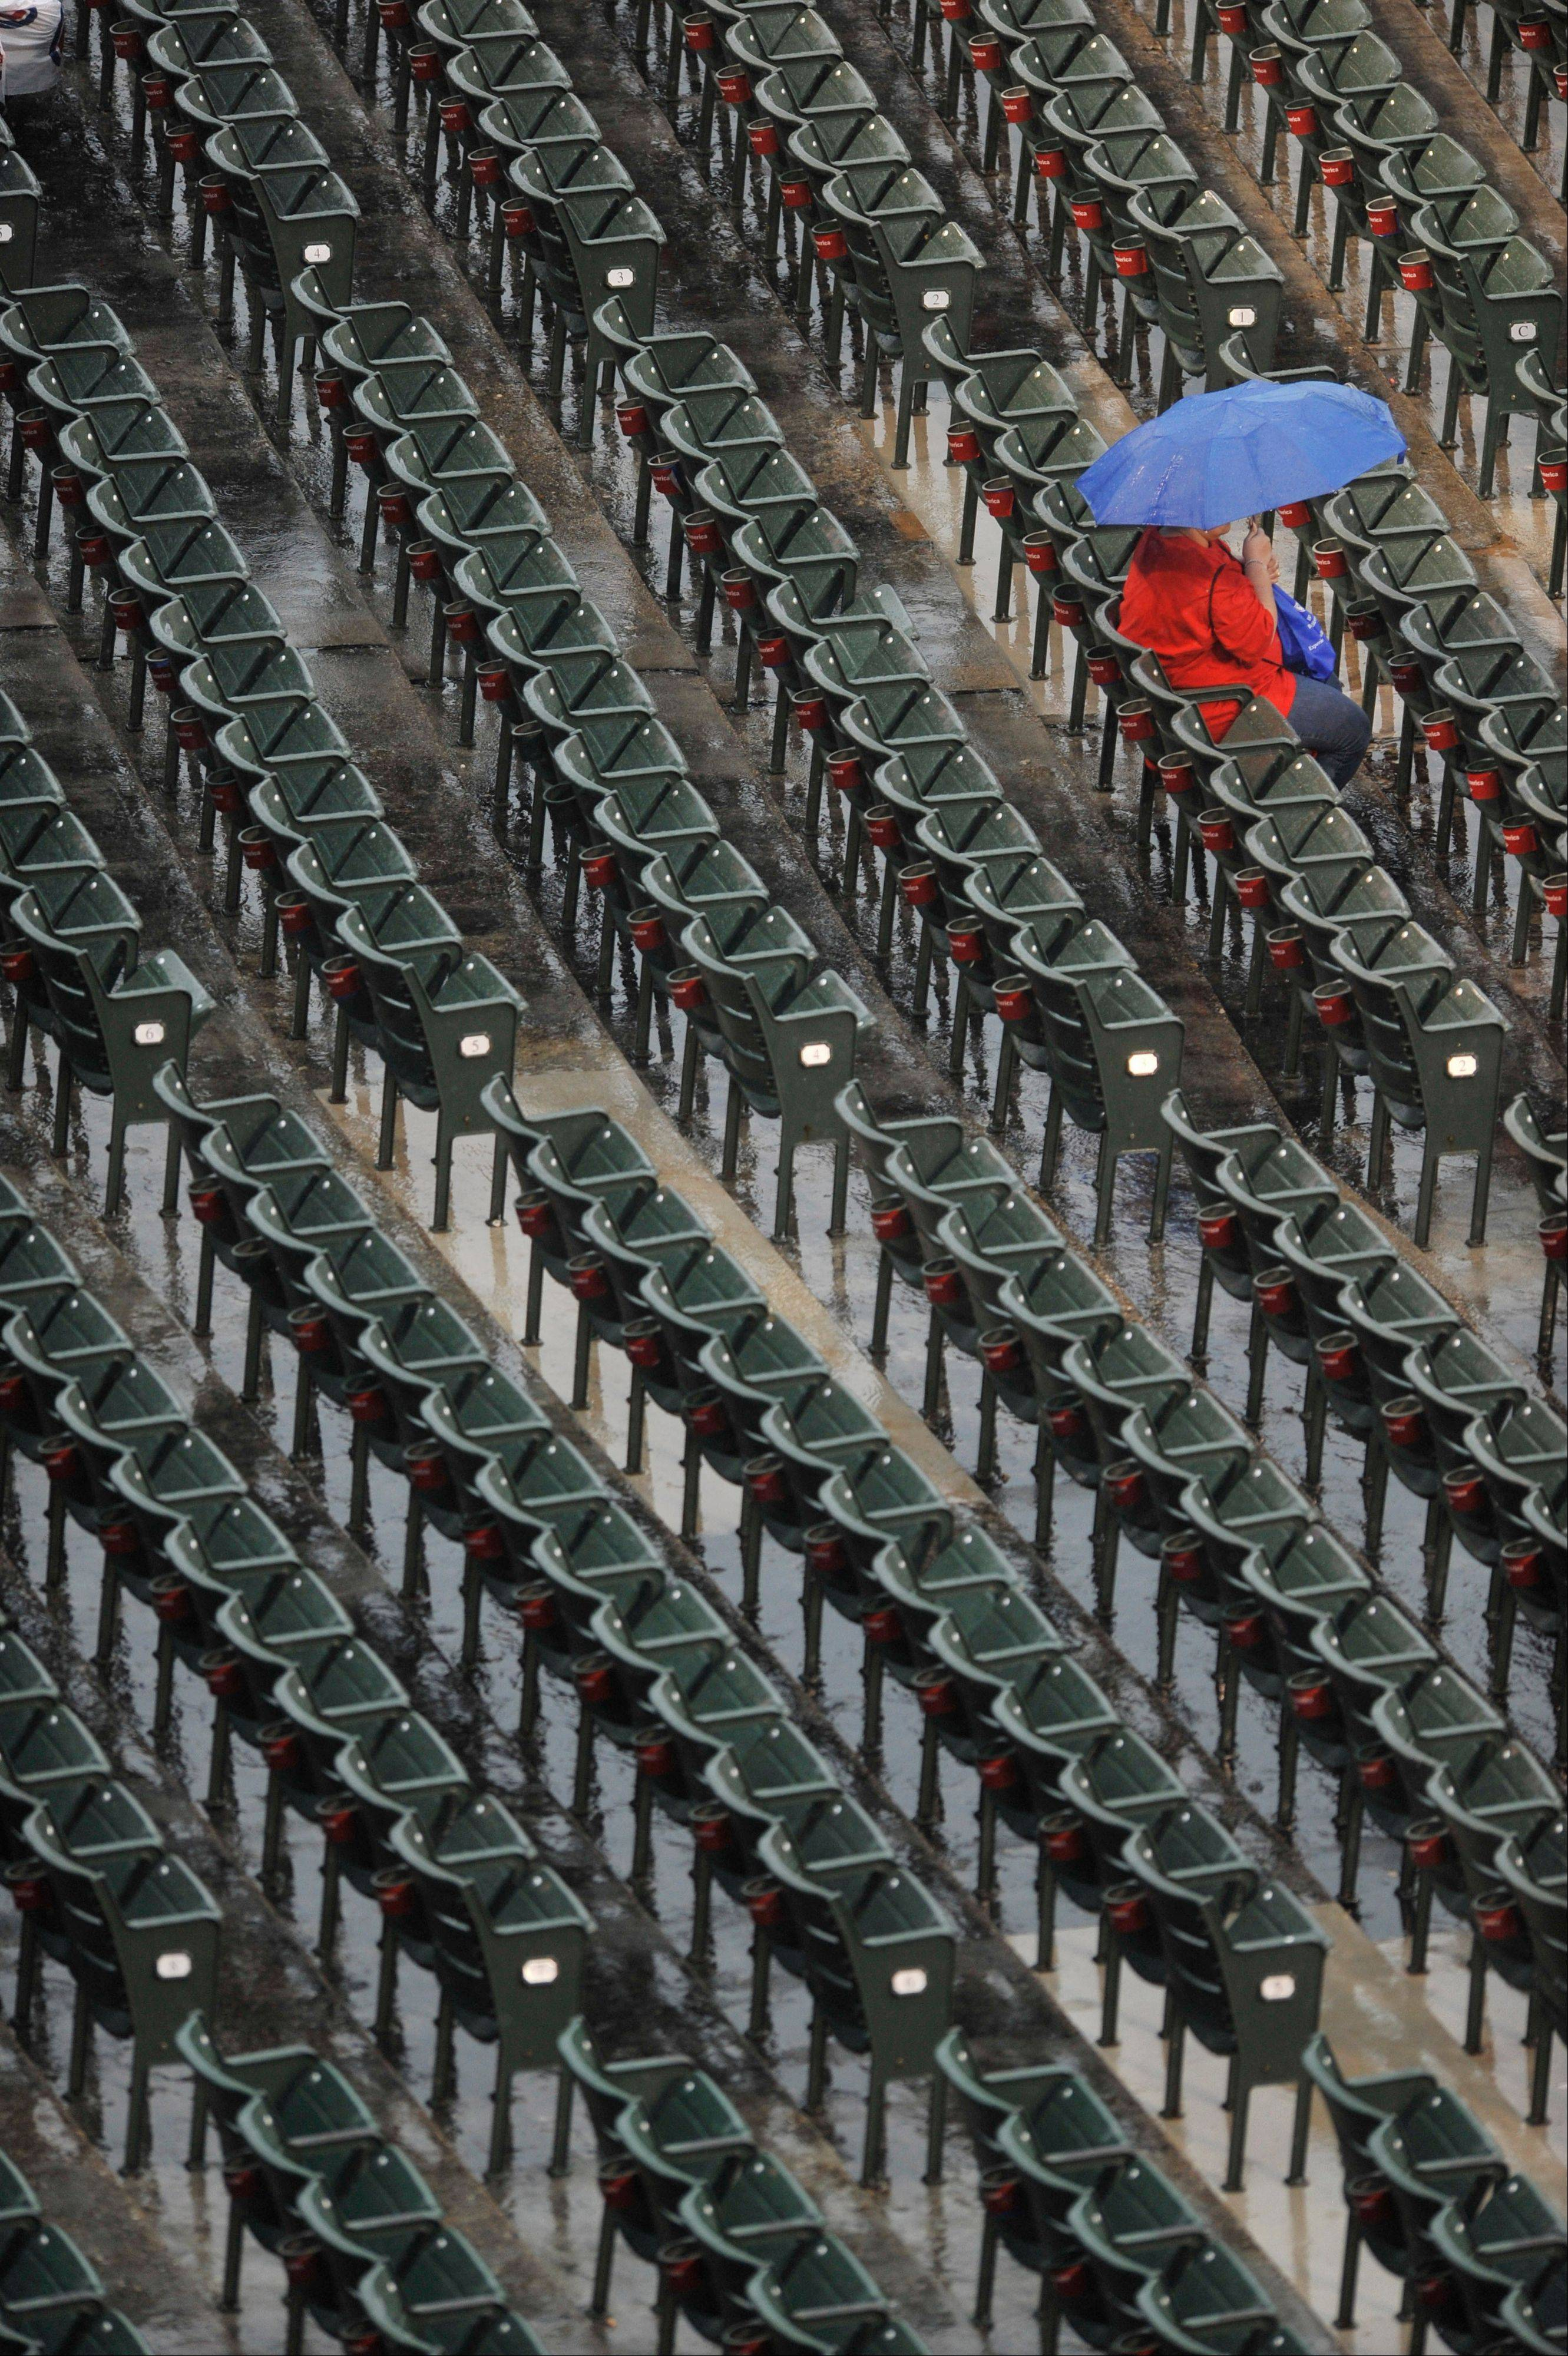 A fan looks on during a rain delay before a baseball game between the Chicago Cubs and the Arizona Diamondbacks at Wrigley Field in Chicago, Saturday, June 1, 2013.